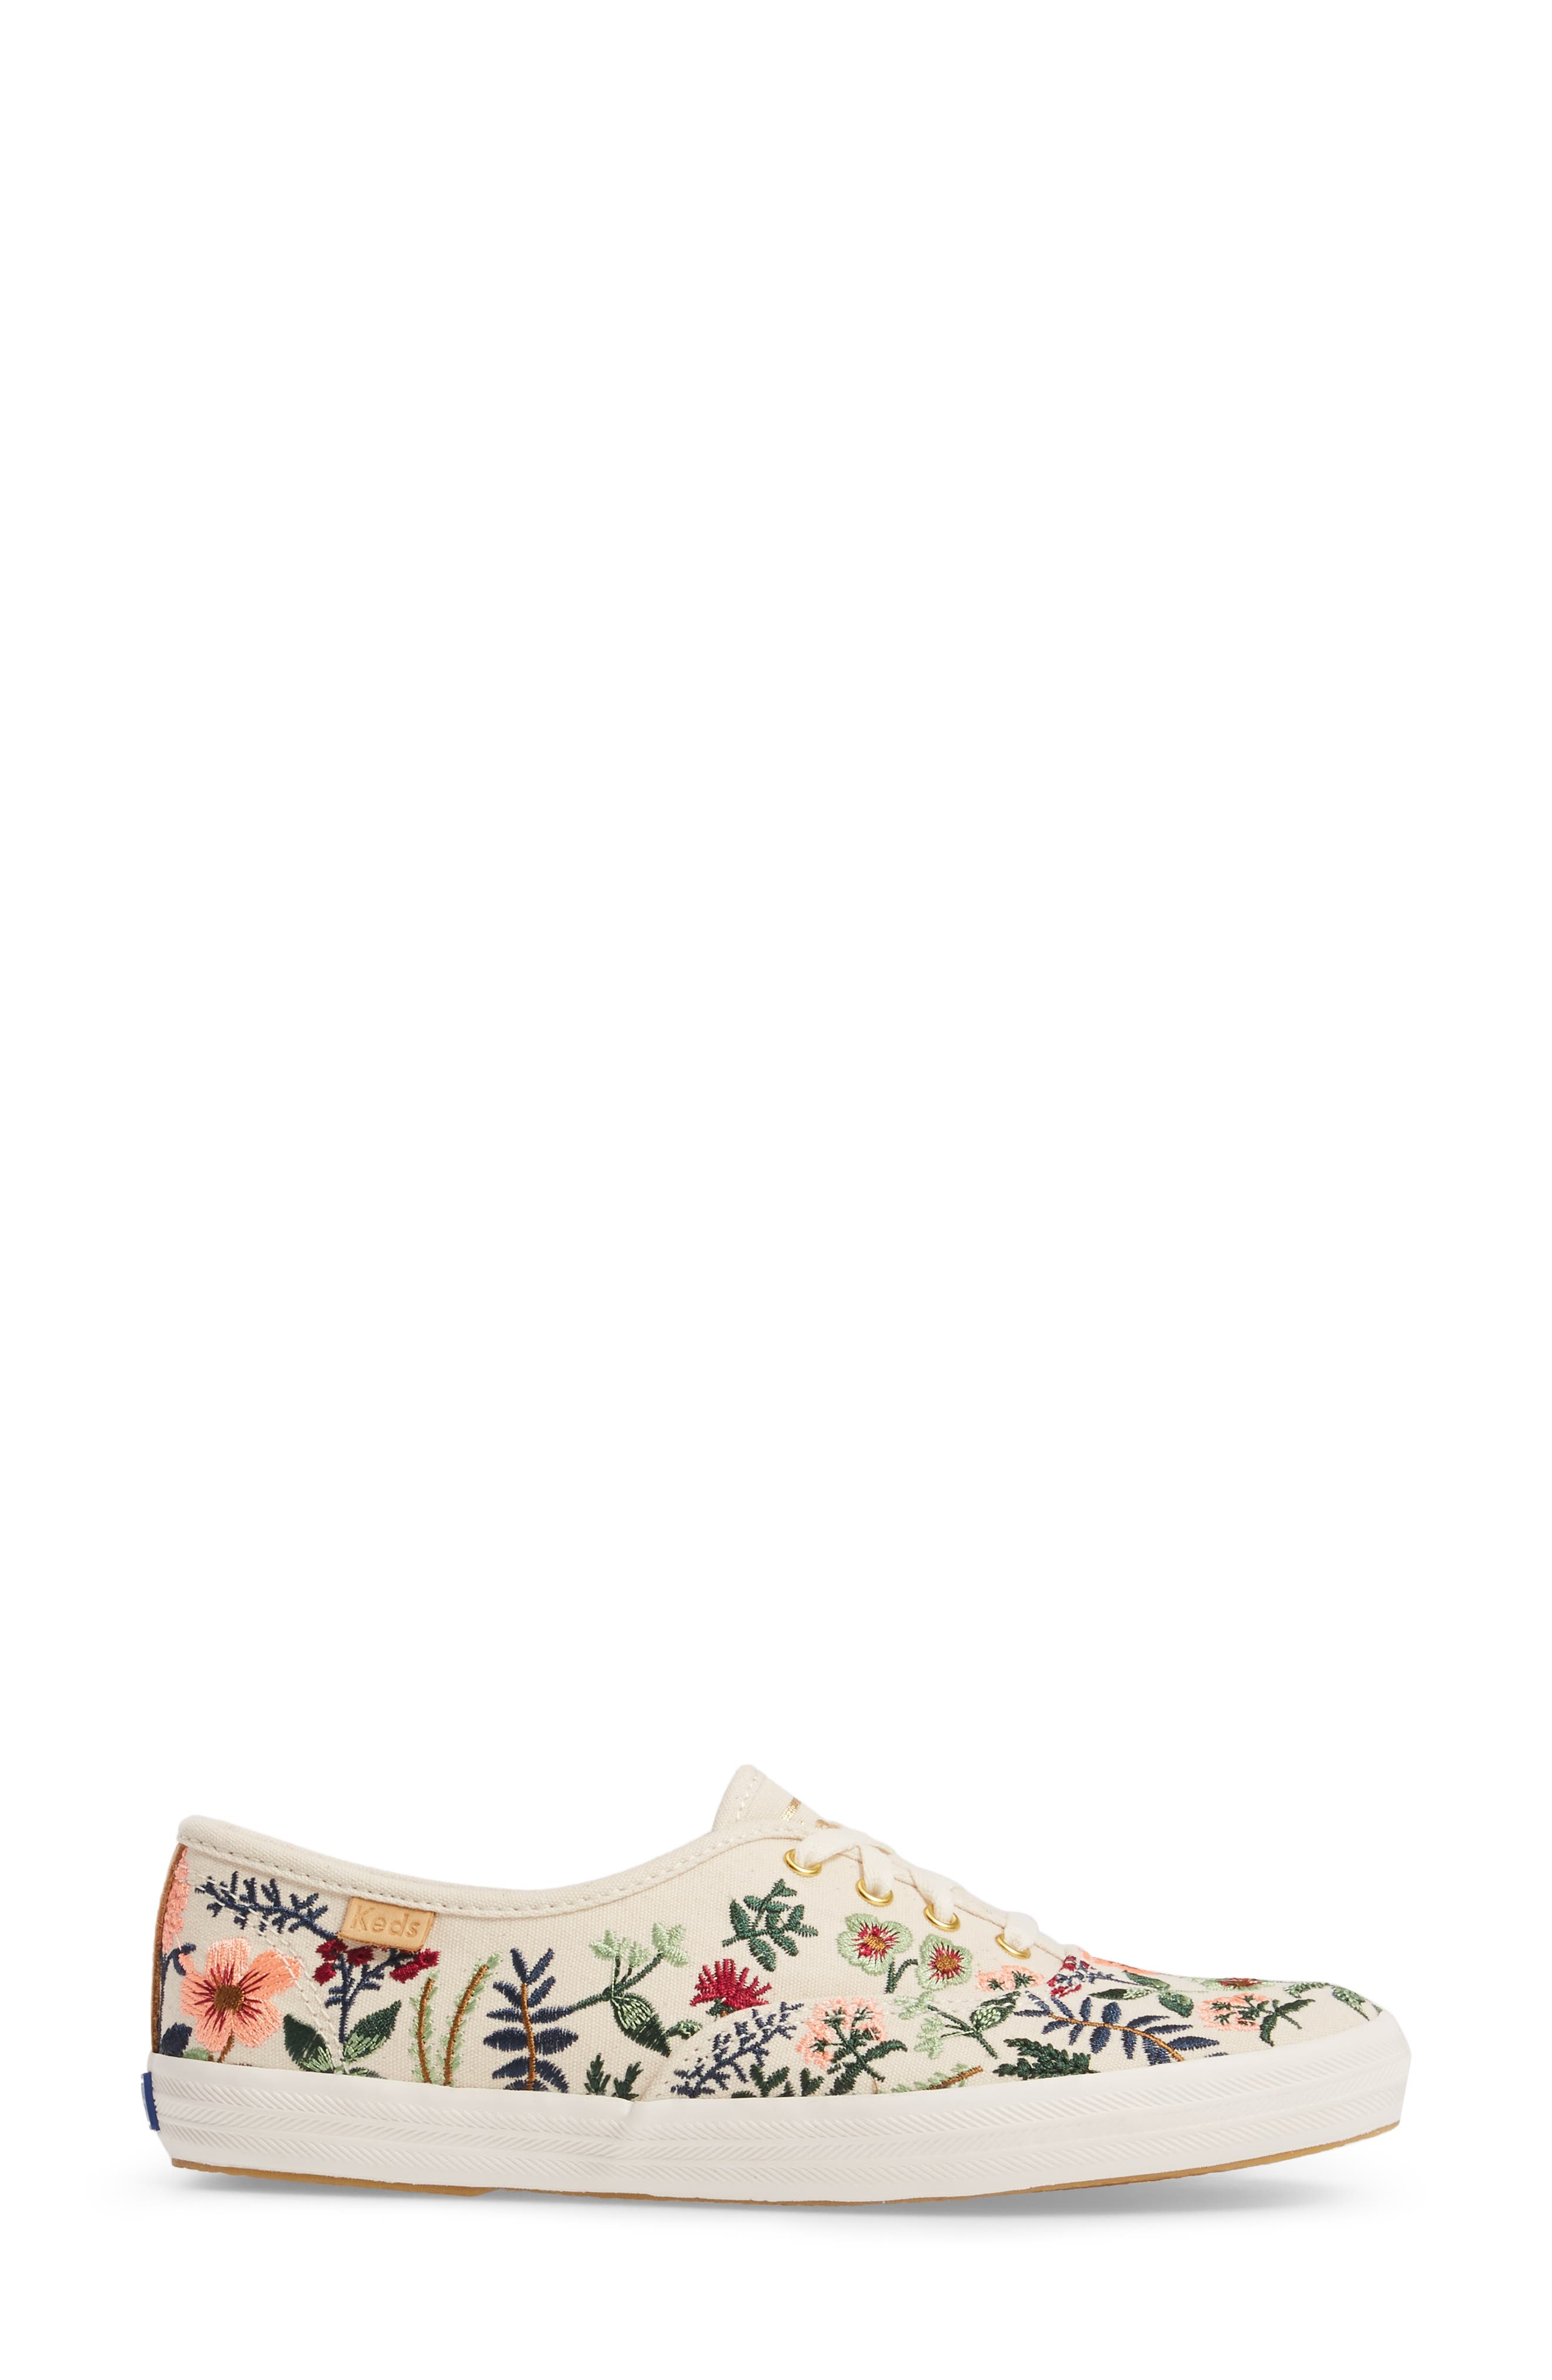 x Rifle Paper Co. Herb Garden Embroidered Sneaker,                             Alternate thumbnail 3, color,                             101